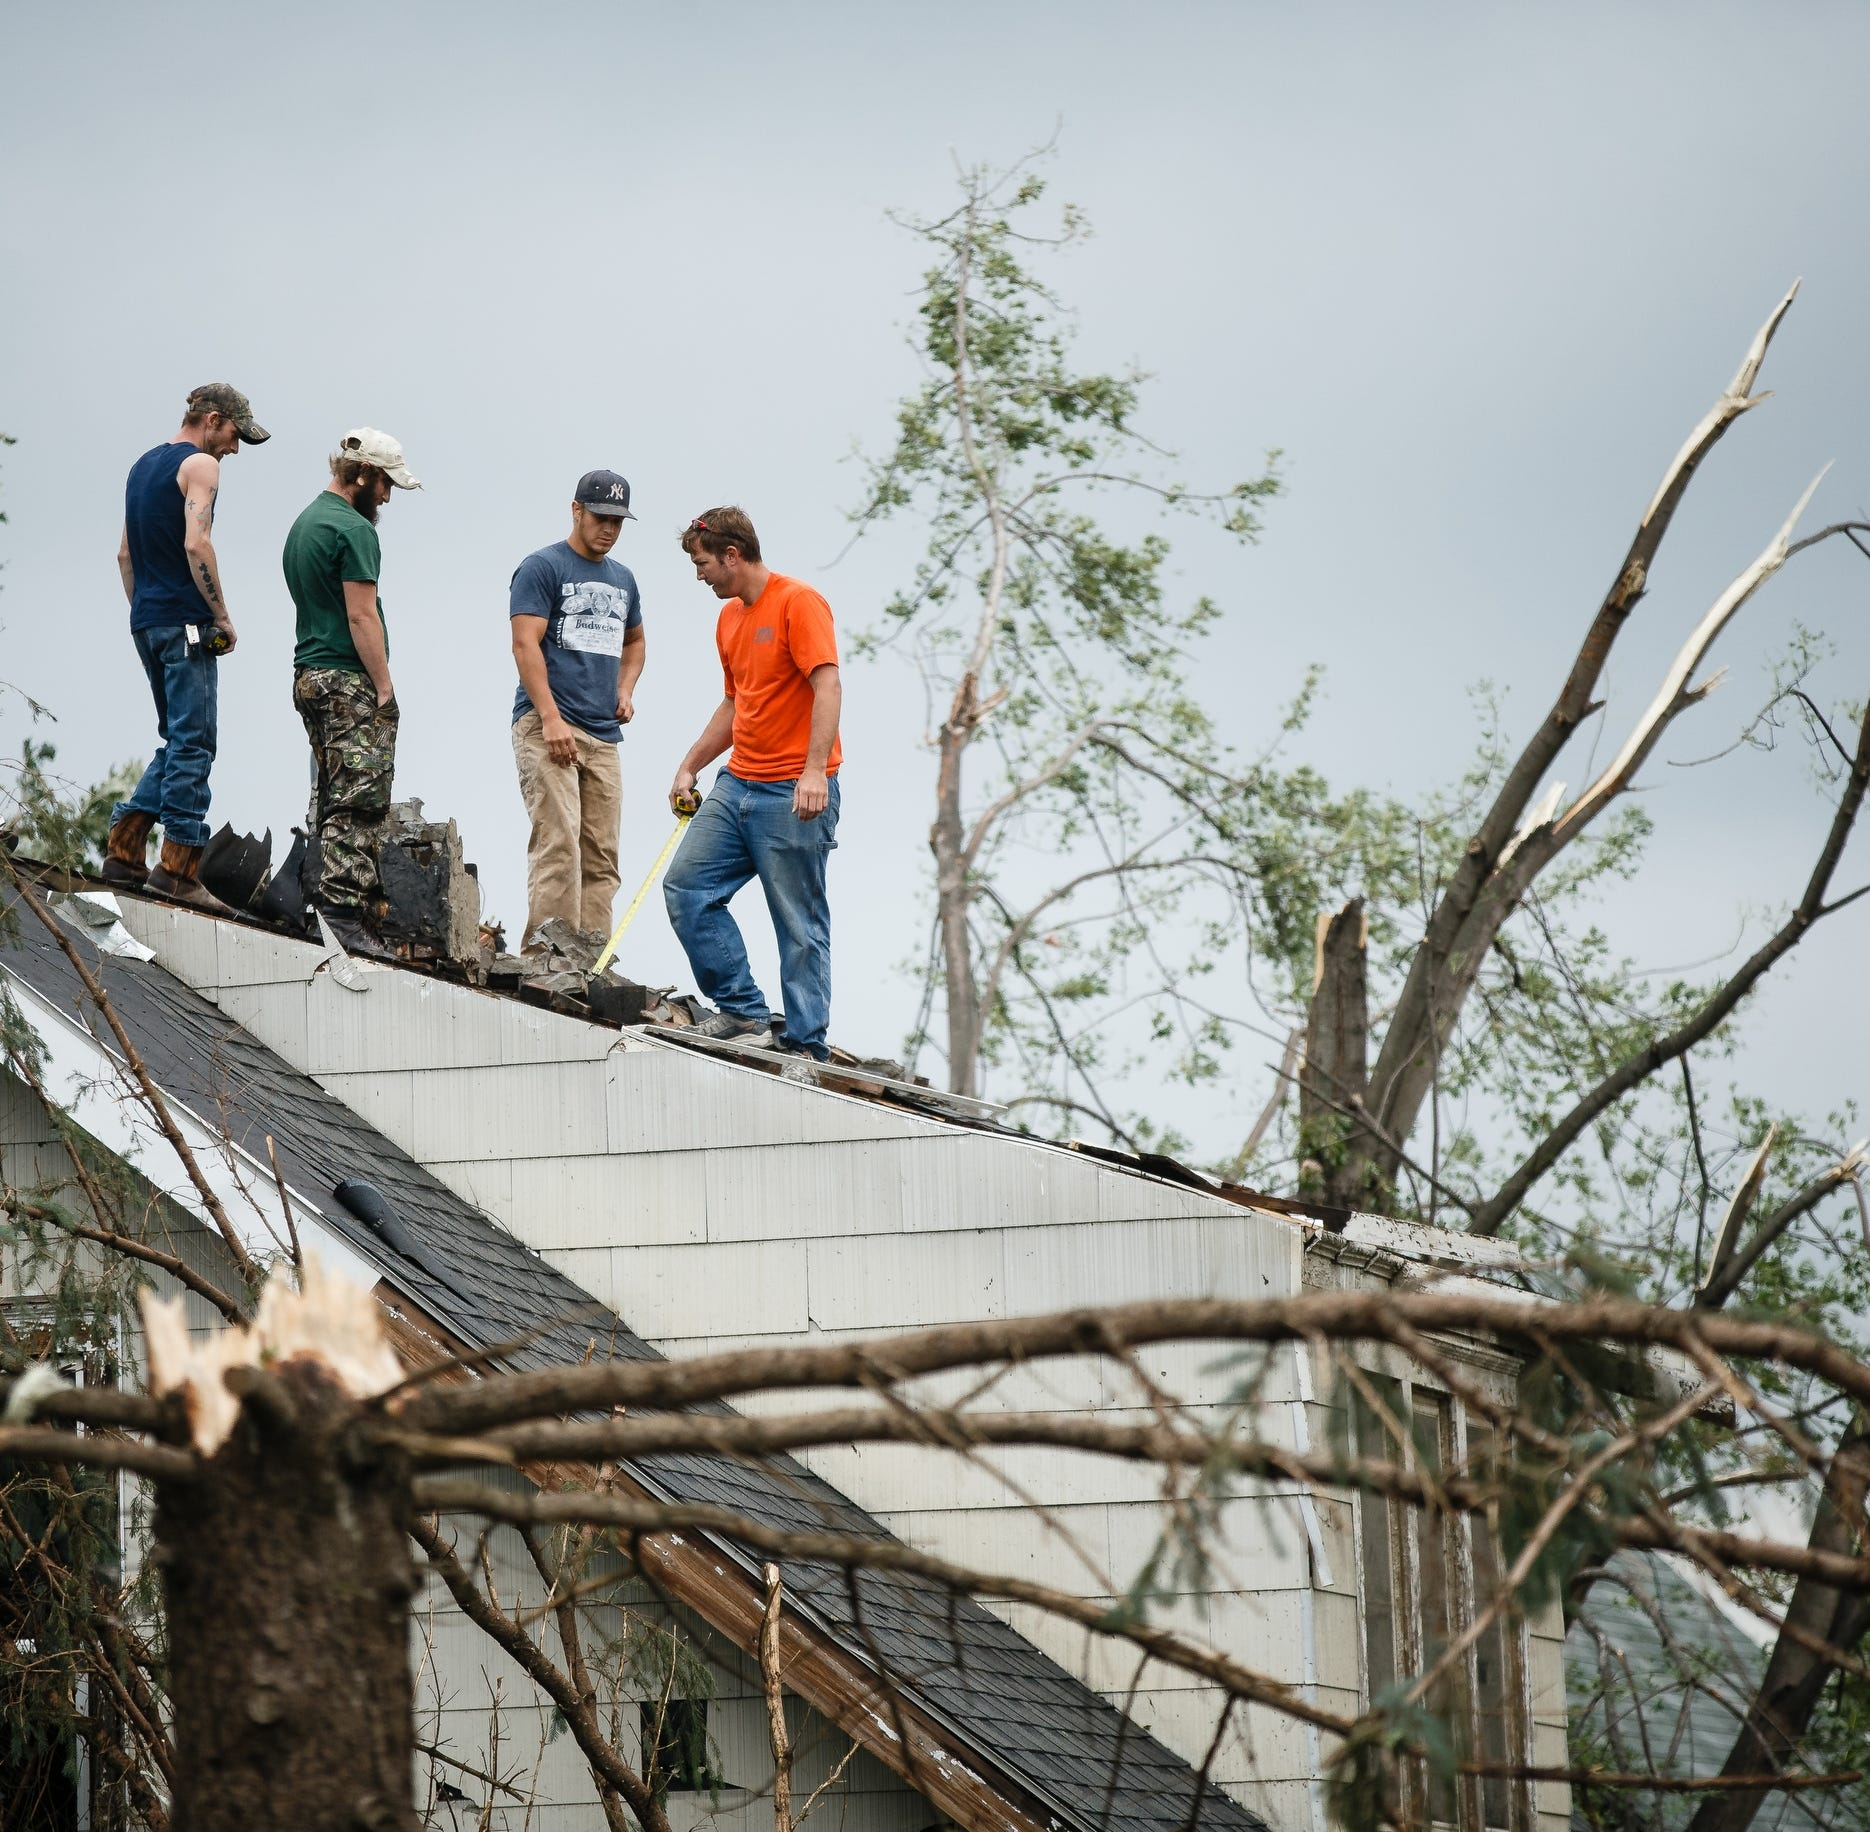 'It's like a war zone': Iowans thankful to be alive in 3 towns hit by tornadoes